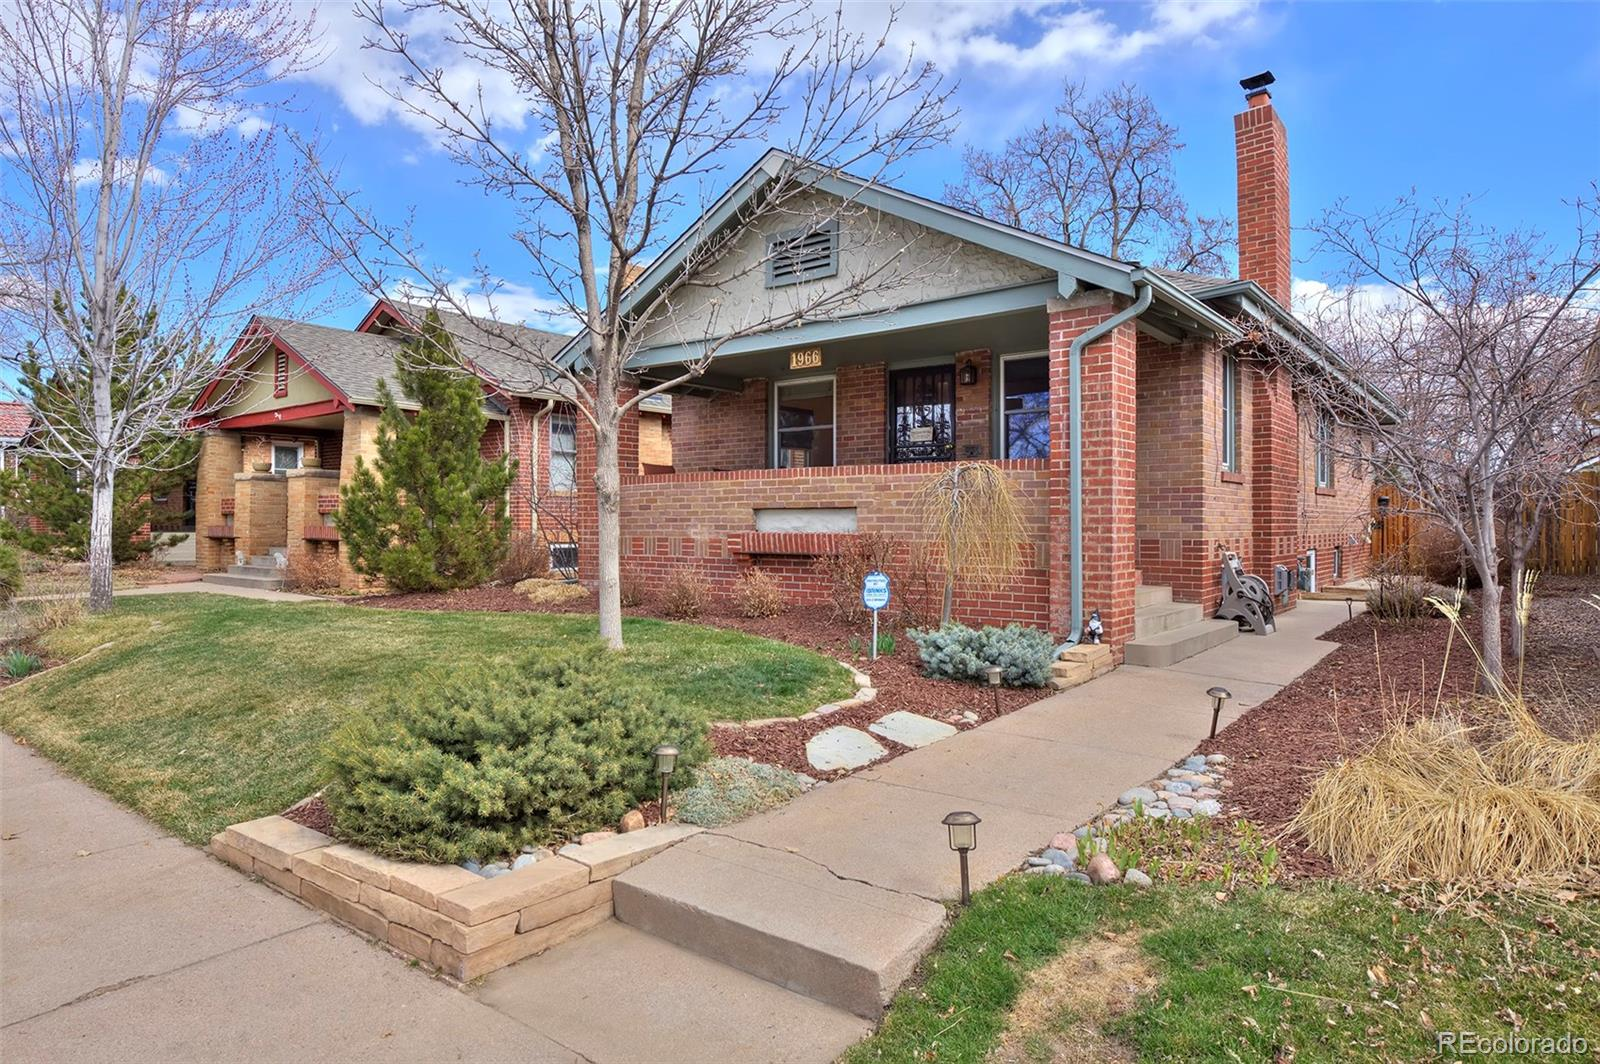 MLS# 7513327 - 1 - 1966 S Lincoln Street, Denver, CO 80210